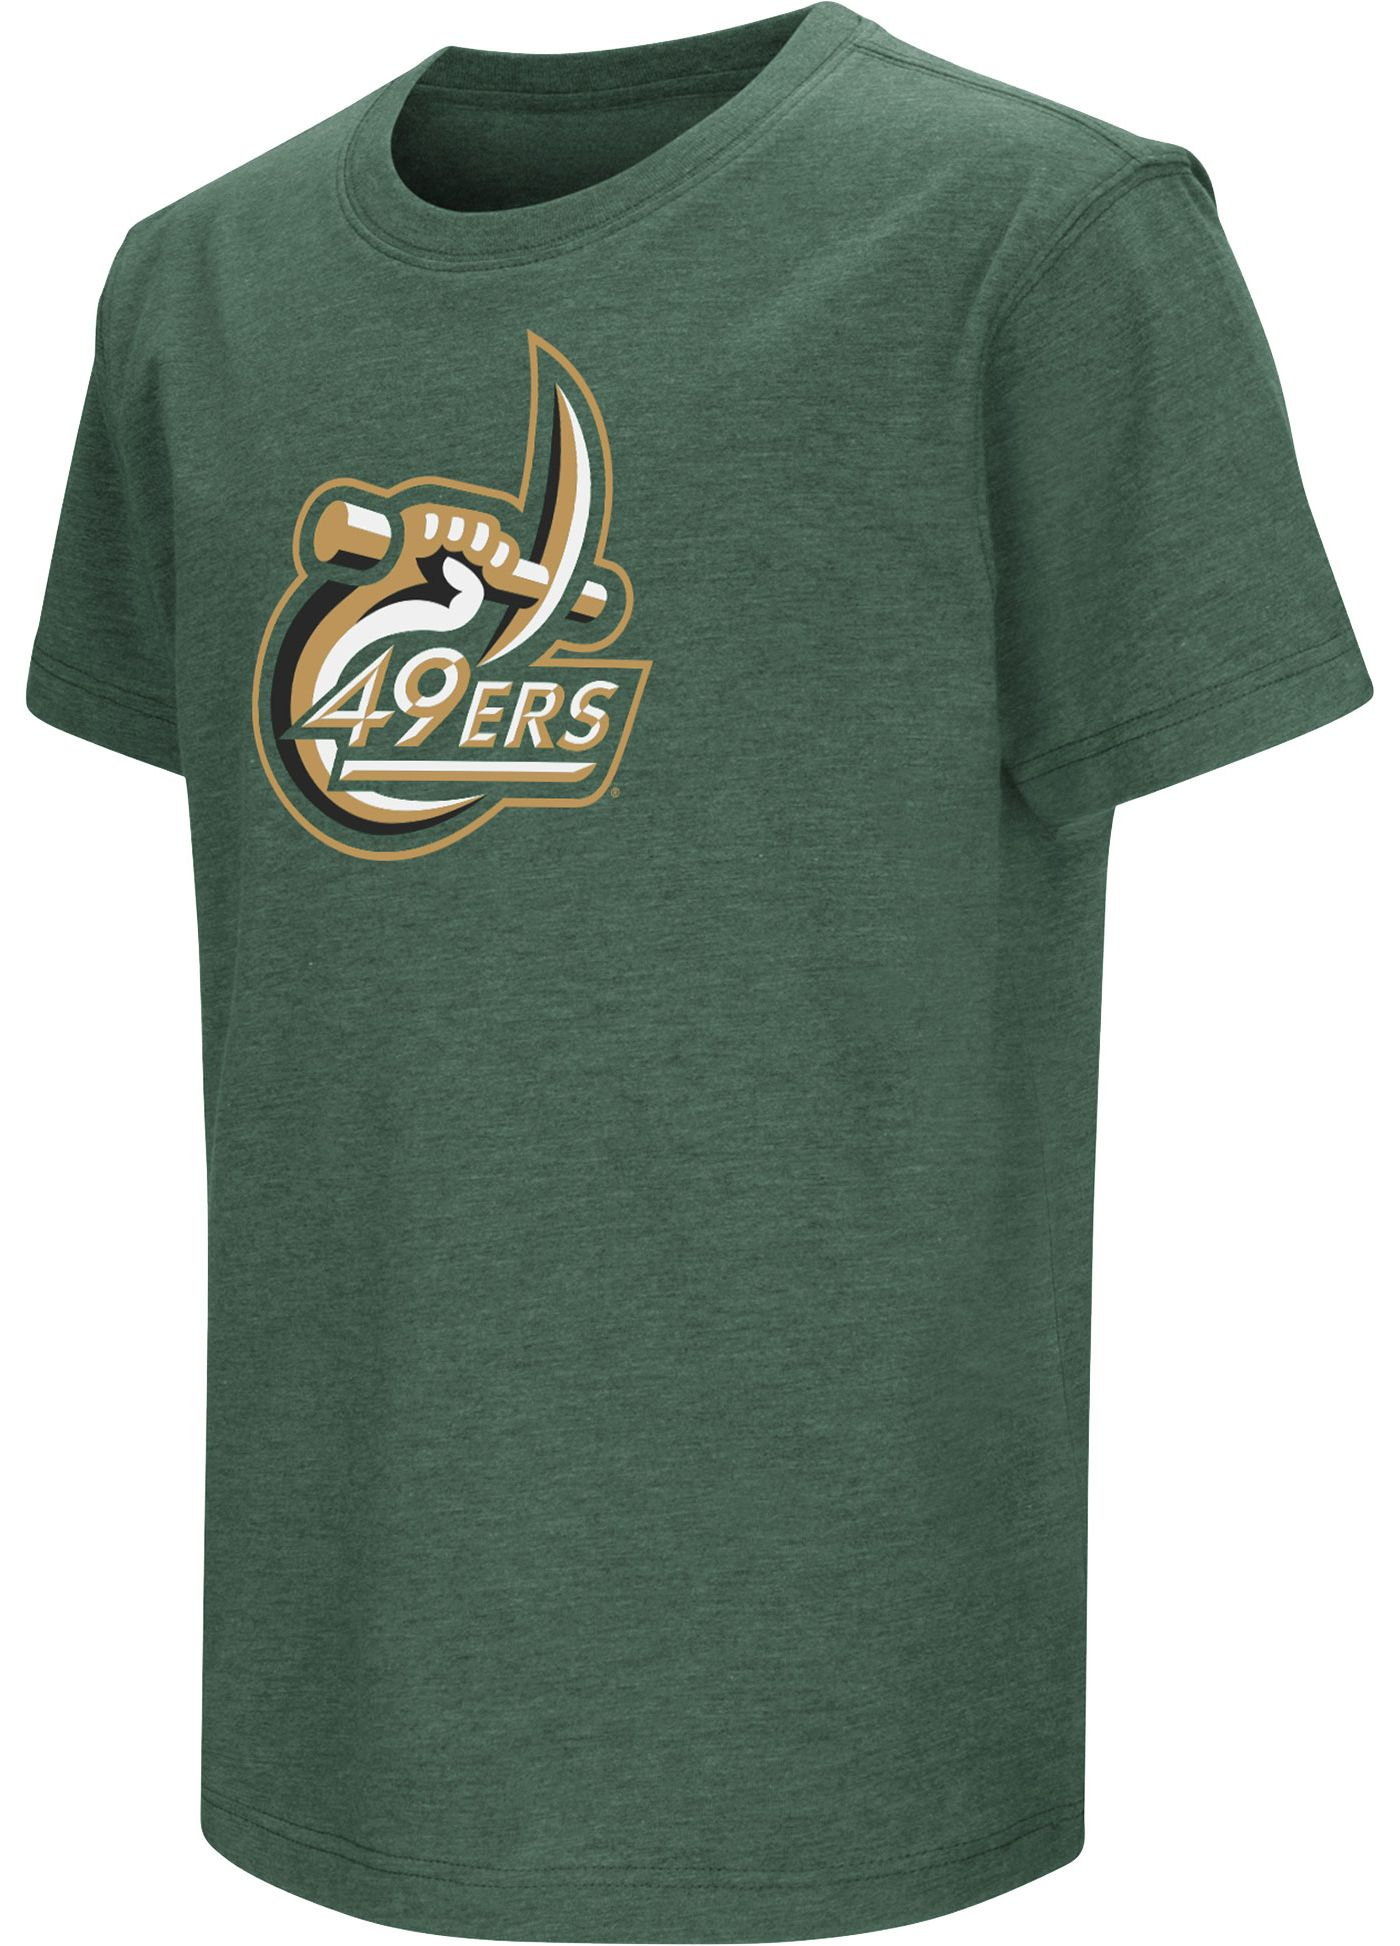 Colosseum Youth Charlotte 49ers Green Dual Blend T-Shirt